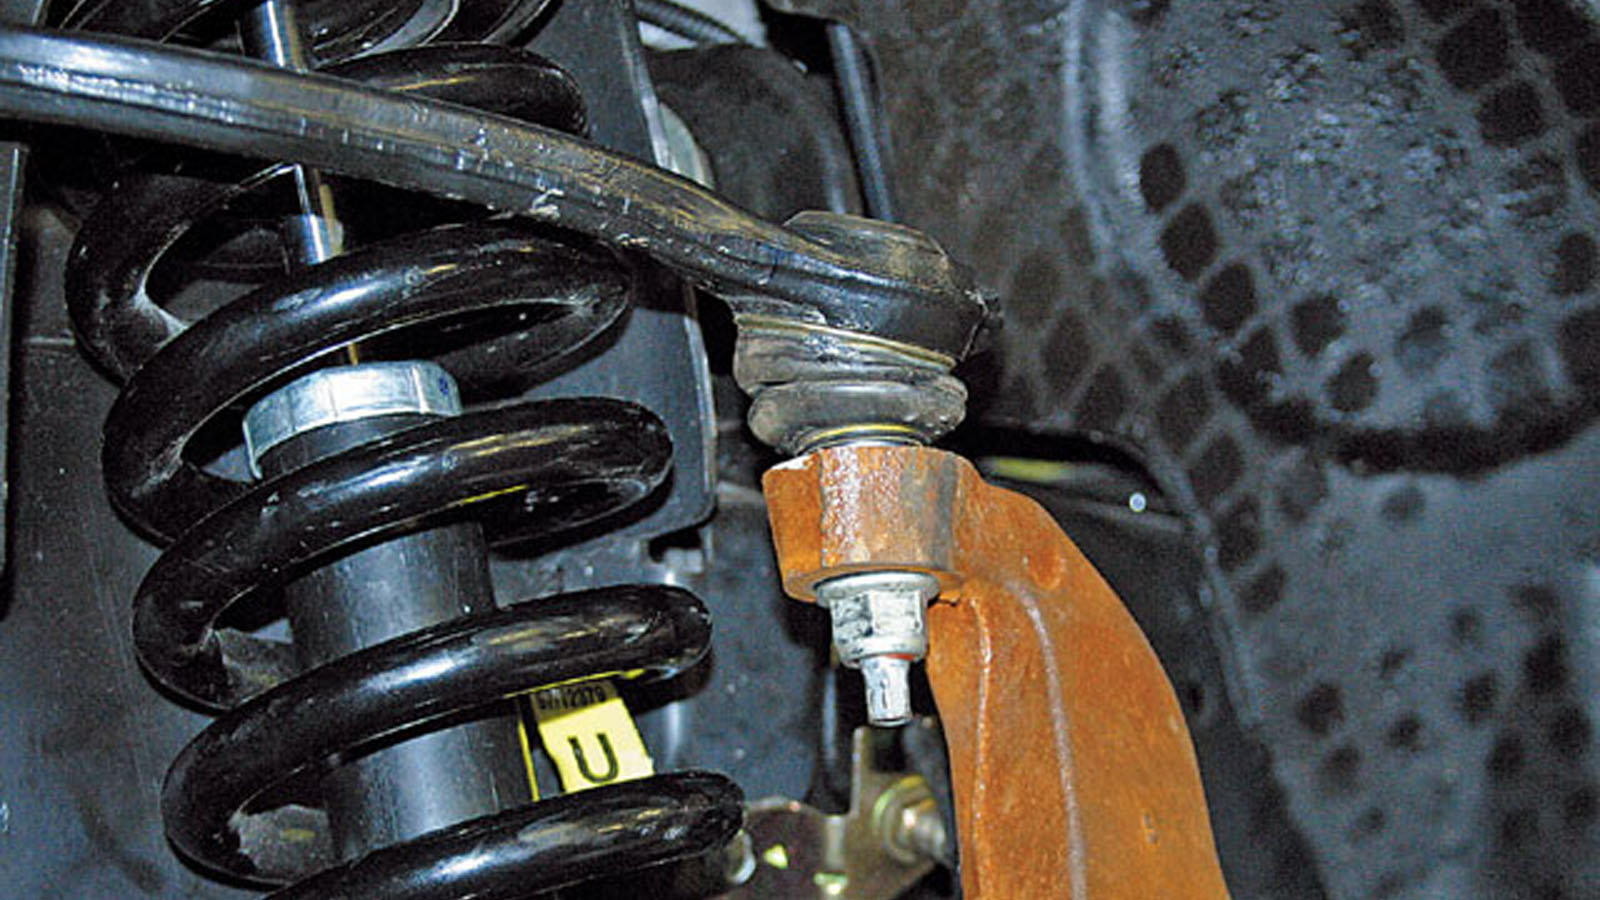 ford ball f150 joints install front joint f250 trucks replace clunking suspension balljoint duty upper